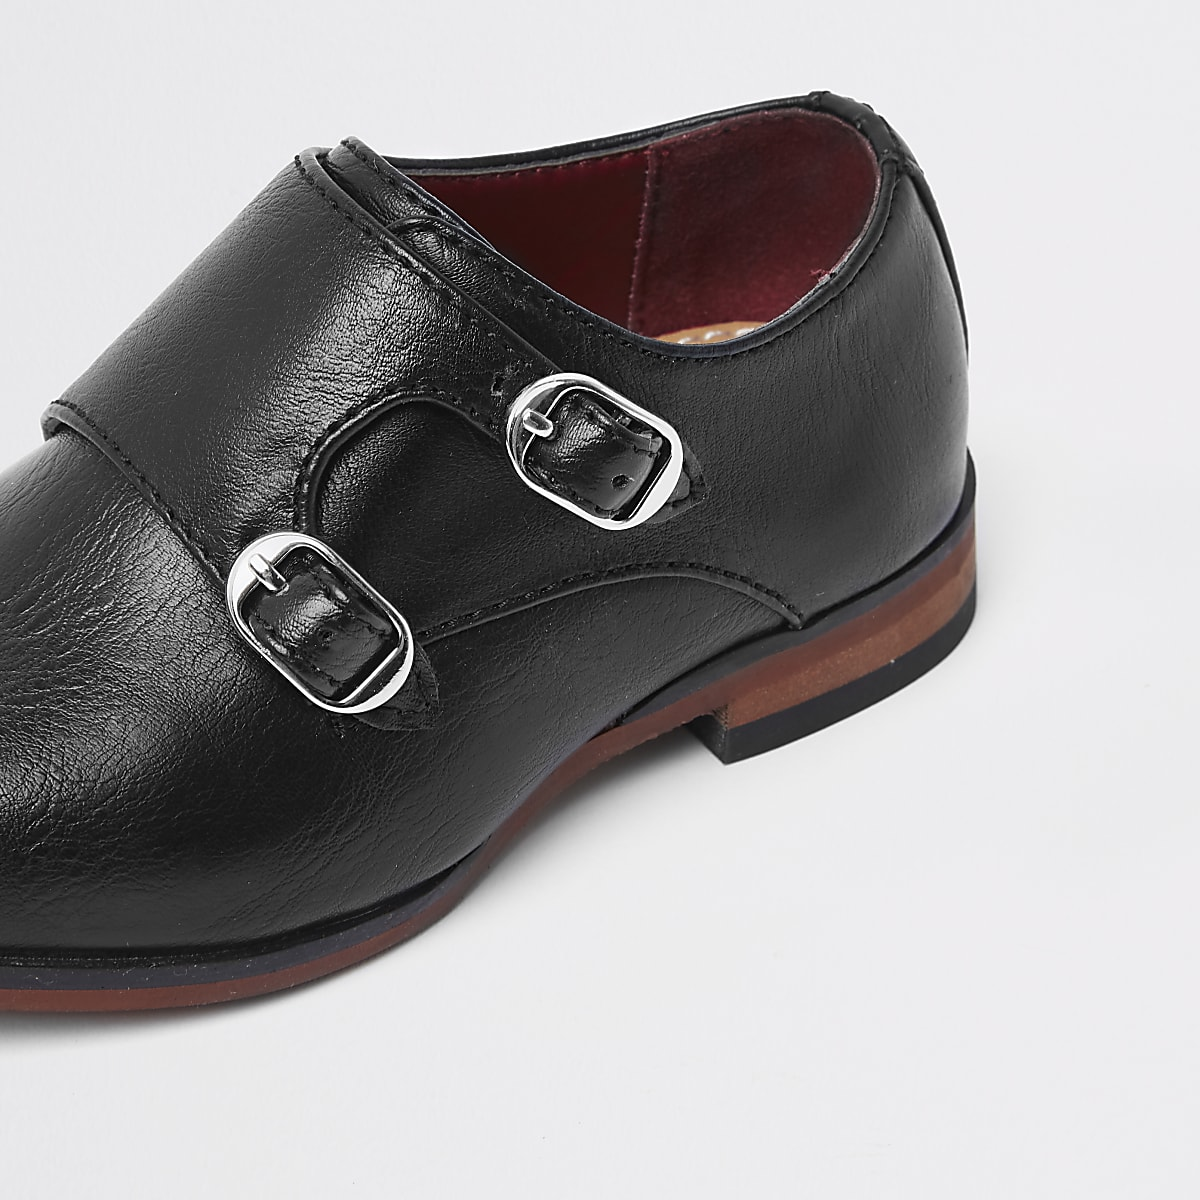 95f91e04b53f1 Mini boys black monk strap pointed shoes